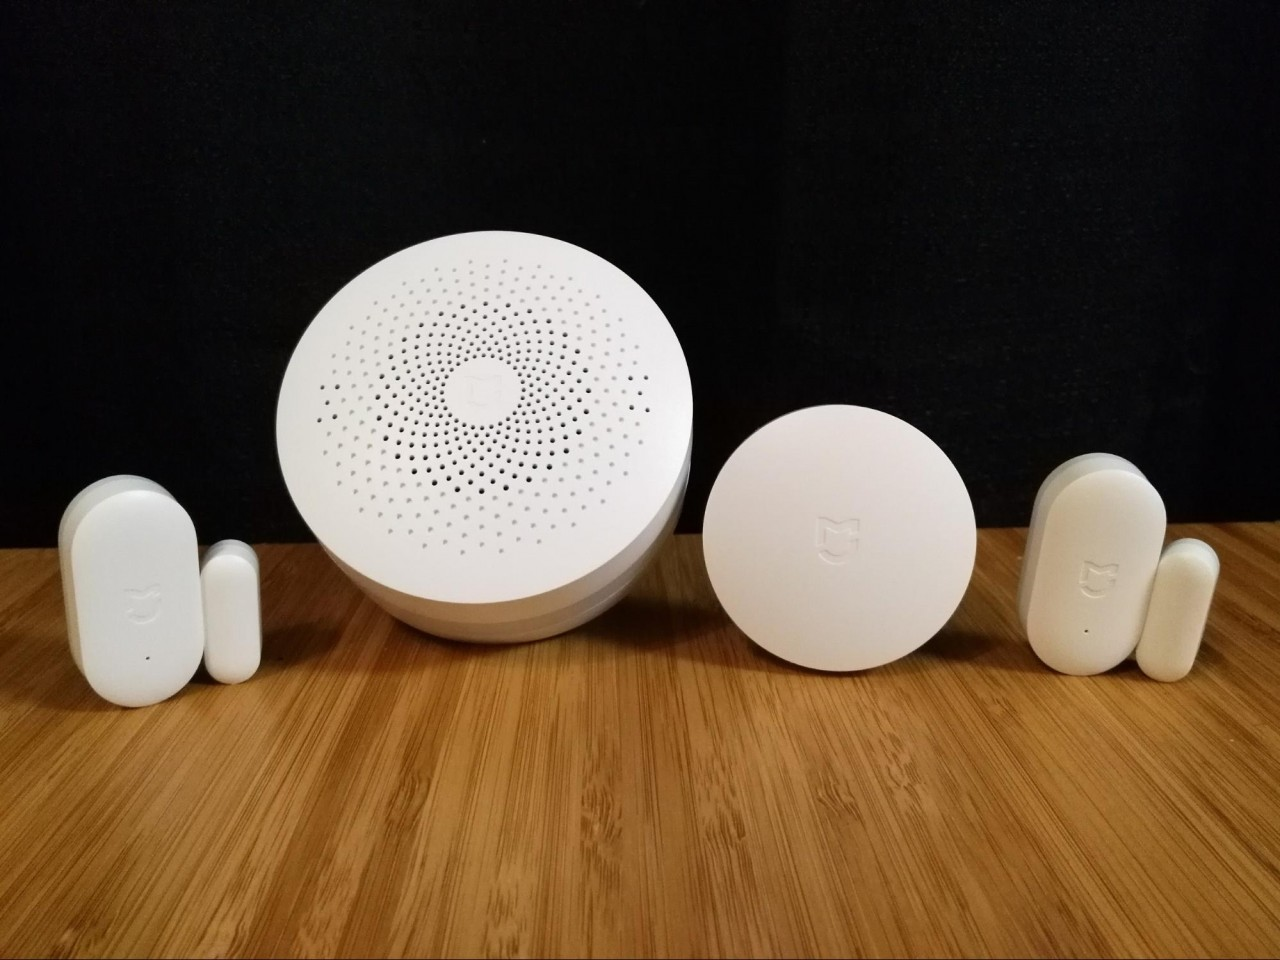 High Tech Gadgets - Xiaomi Smart Home Kit